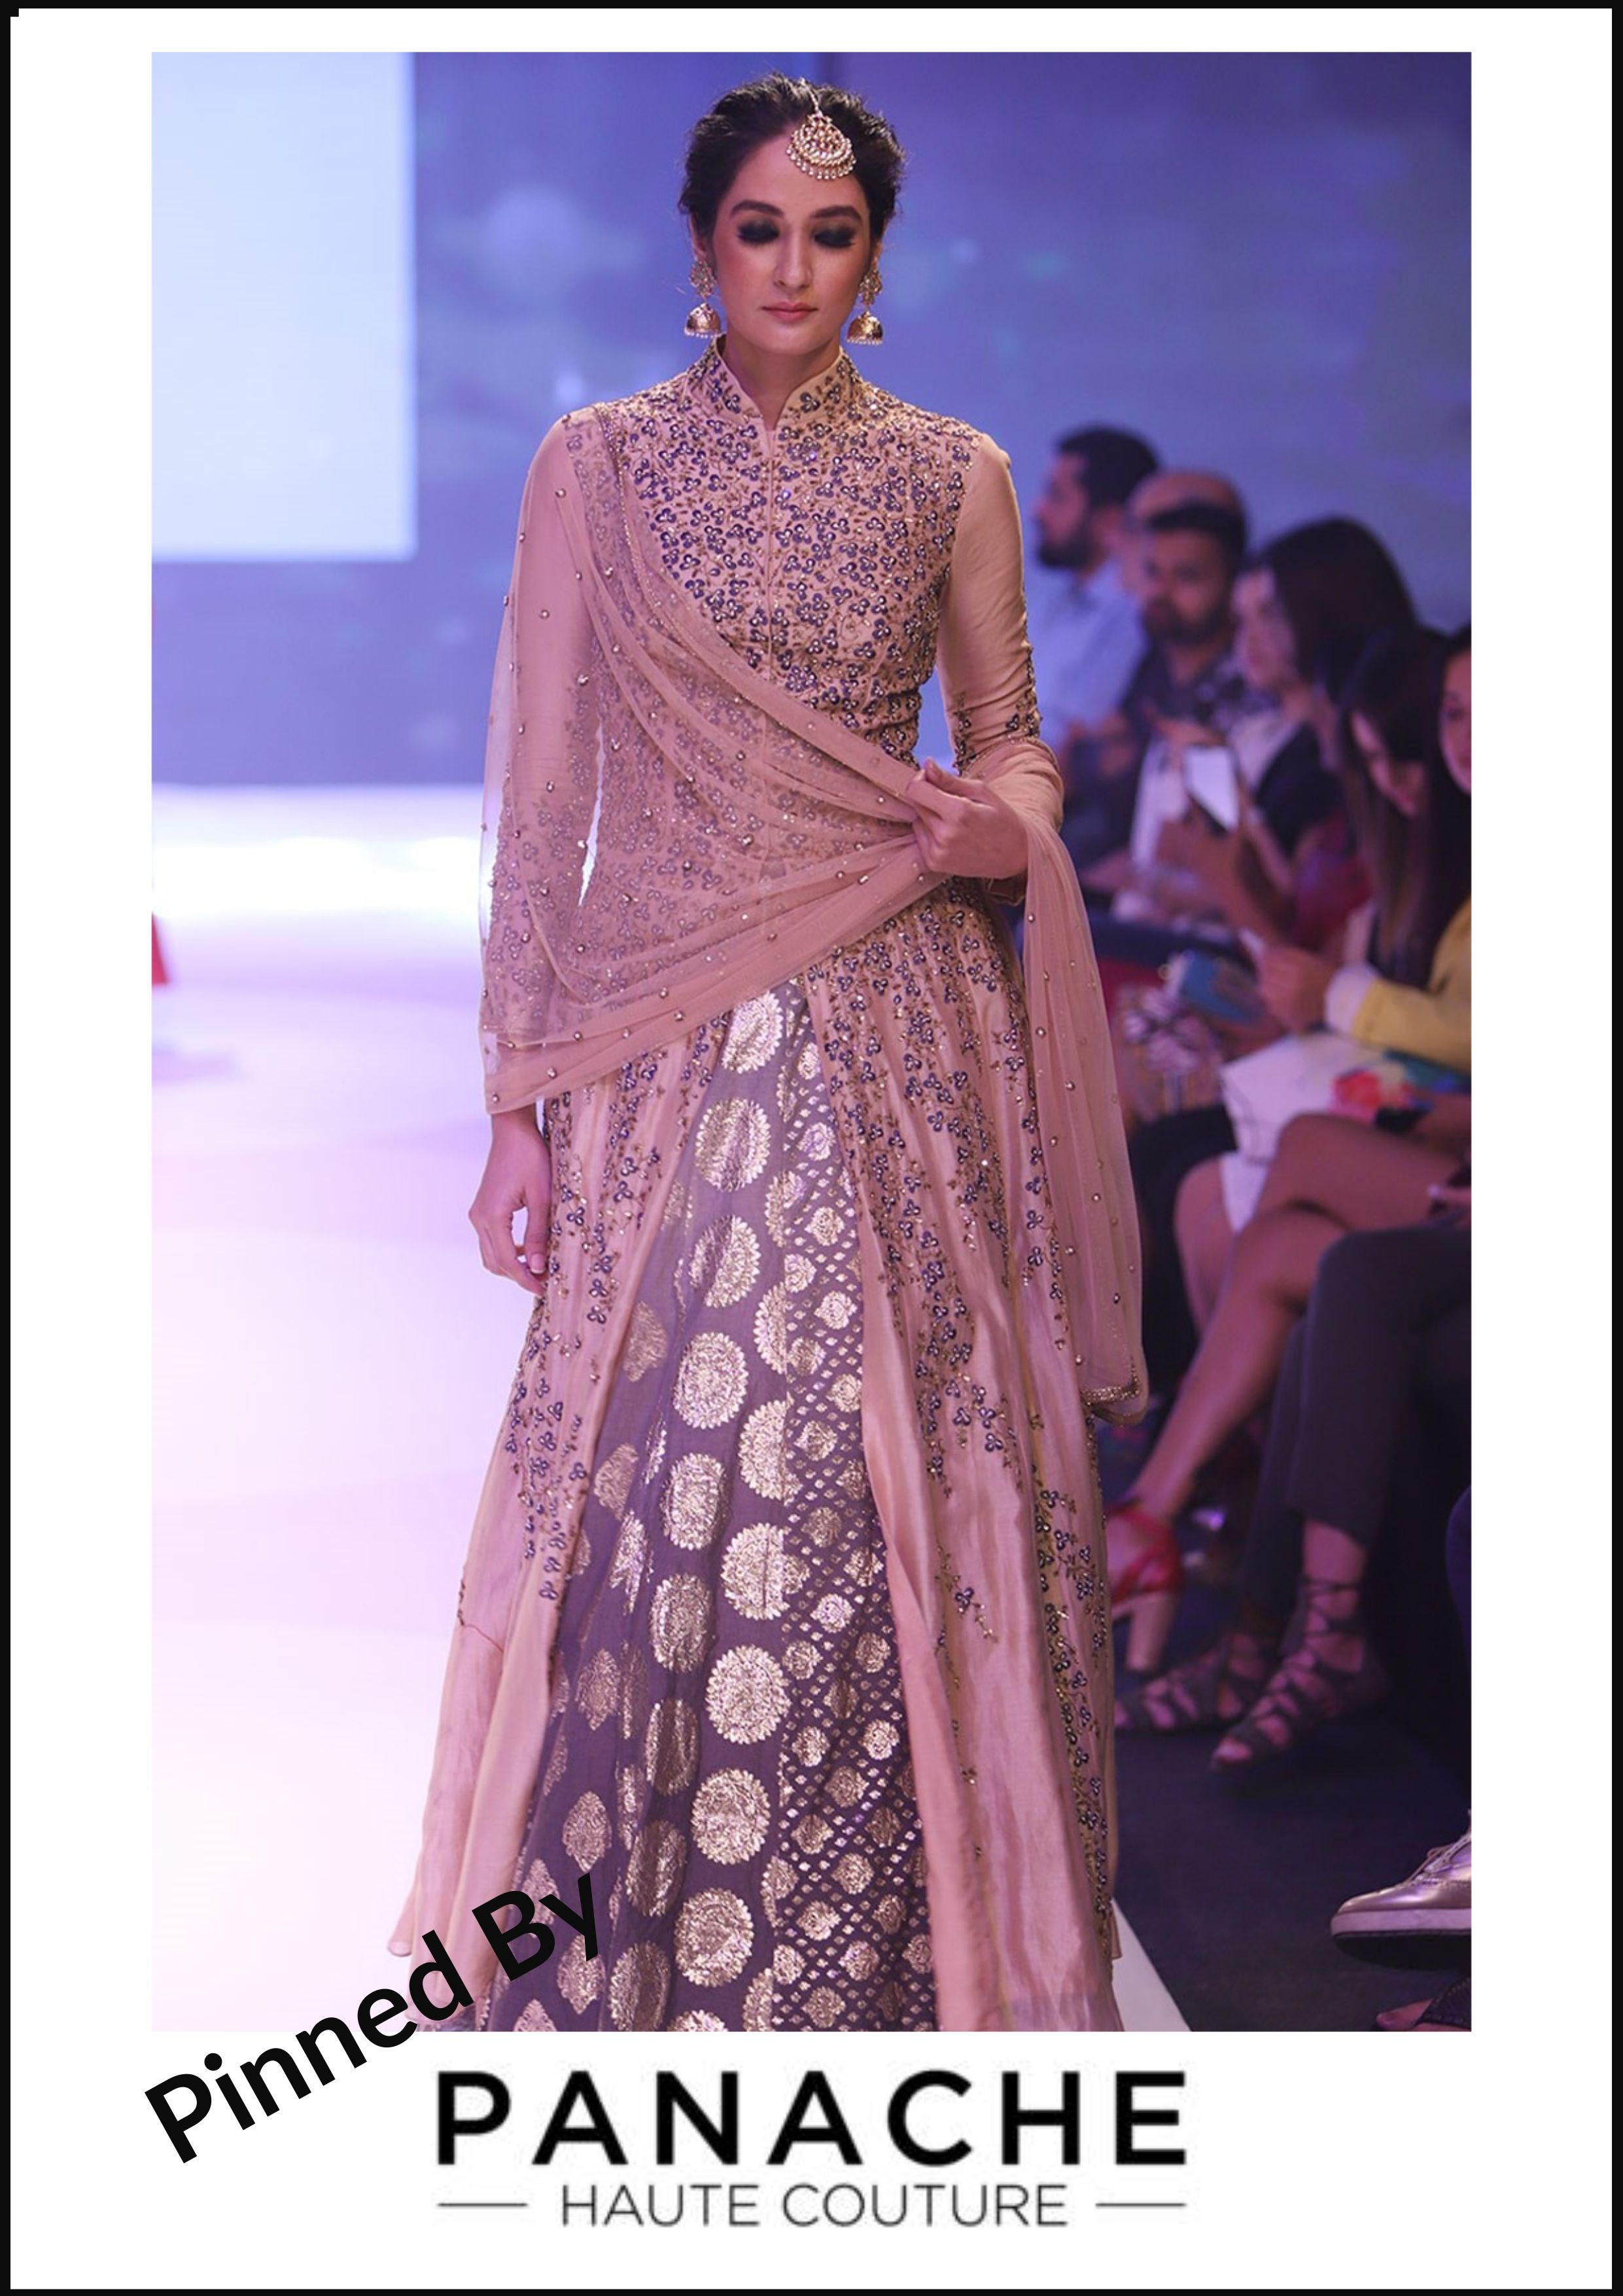 f5c4221e97 ... Panache Haute Couture. Hand-Embroidered Dusty Rose Colour Jacket with  Brocade Lehenga For customisations please contact our sales